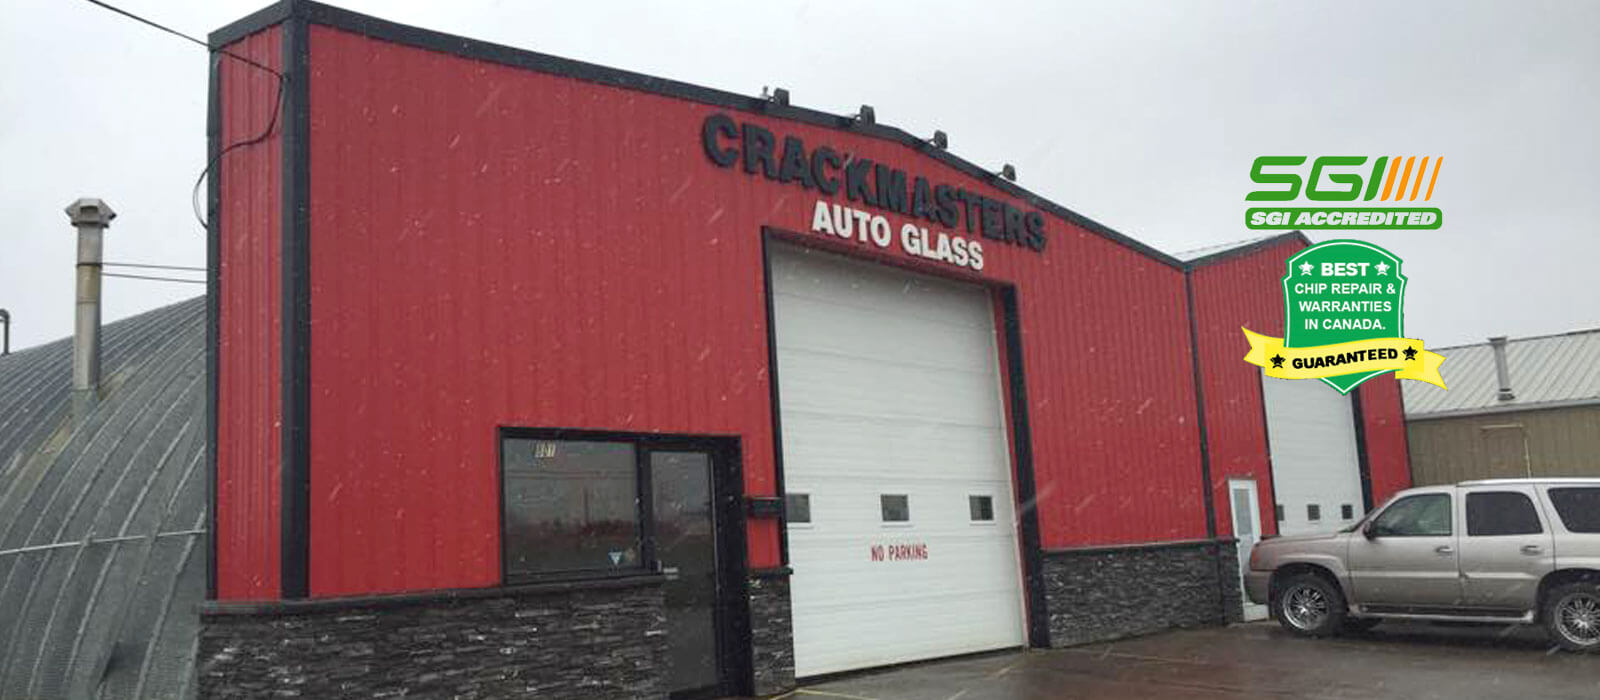 Crackmasters Auto Glass